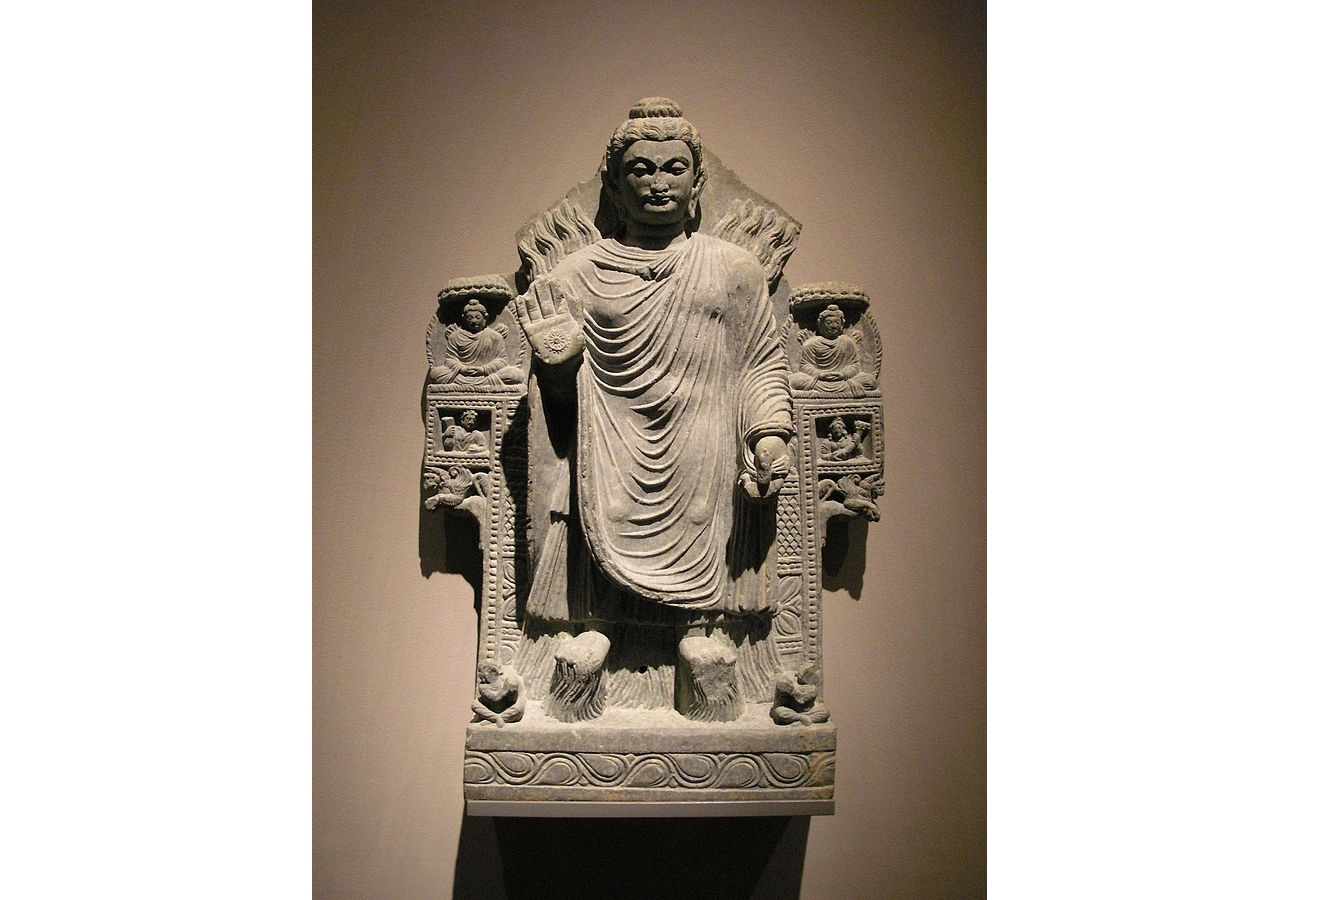 The Buddha shows miracles. Gandhara, 3rd century CE. Located in the Museum für Indische Kunst, Berlin-Dahlem